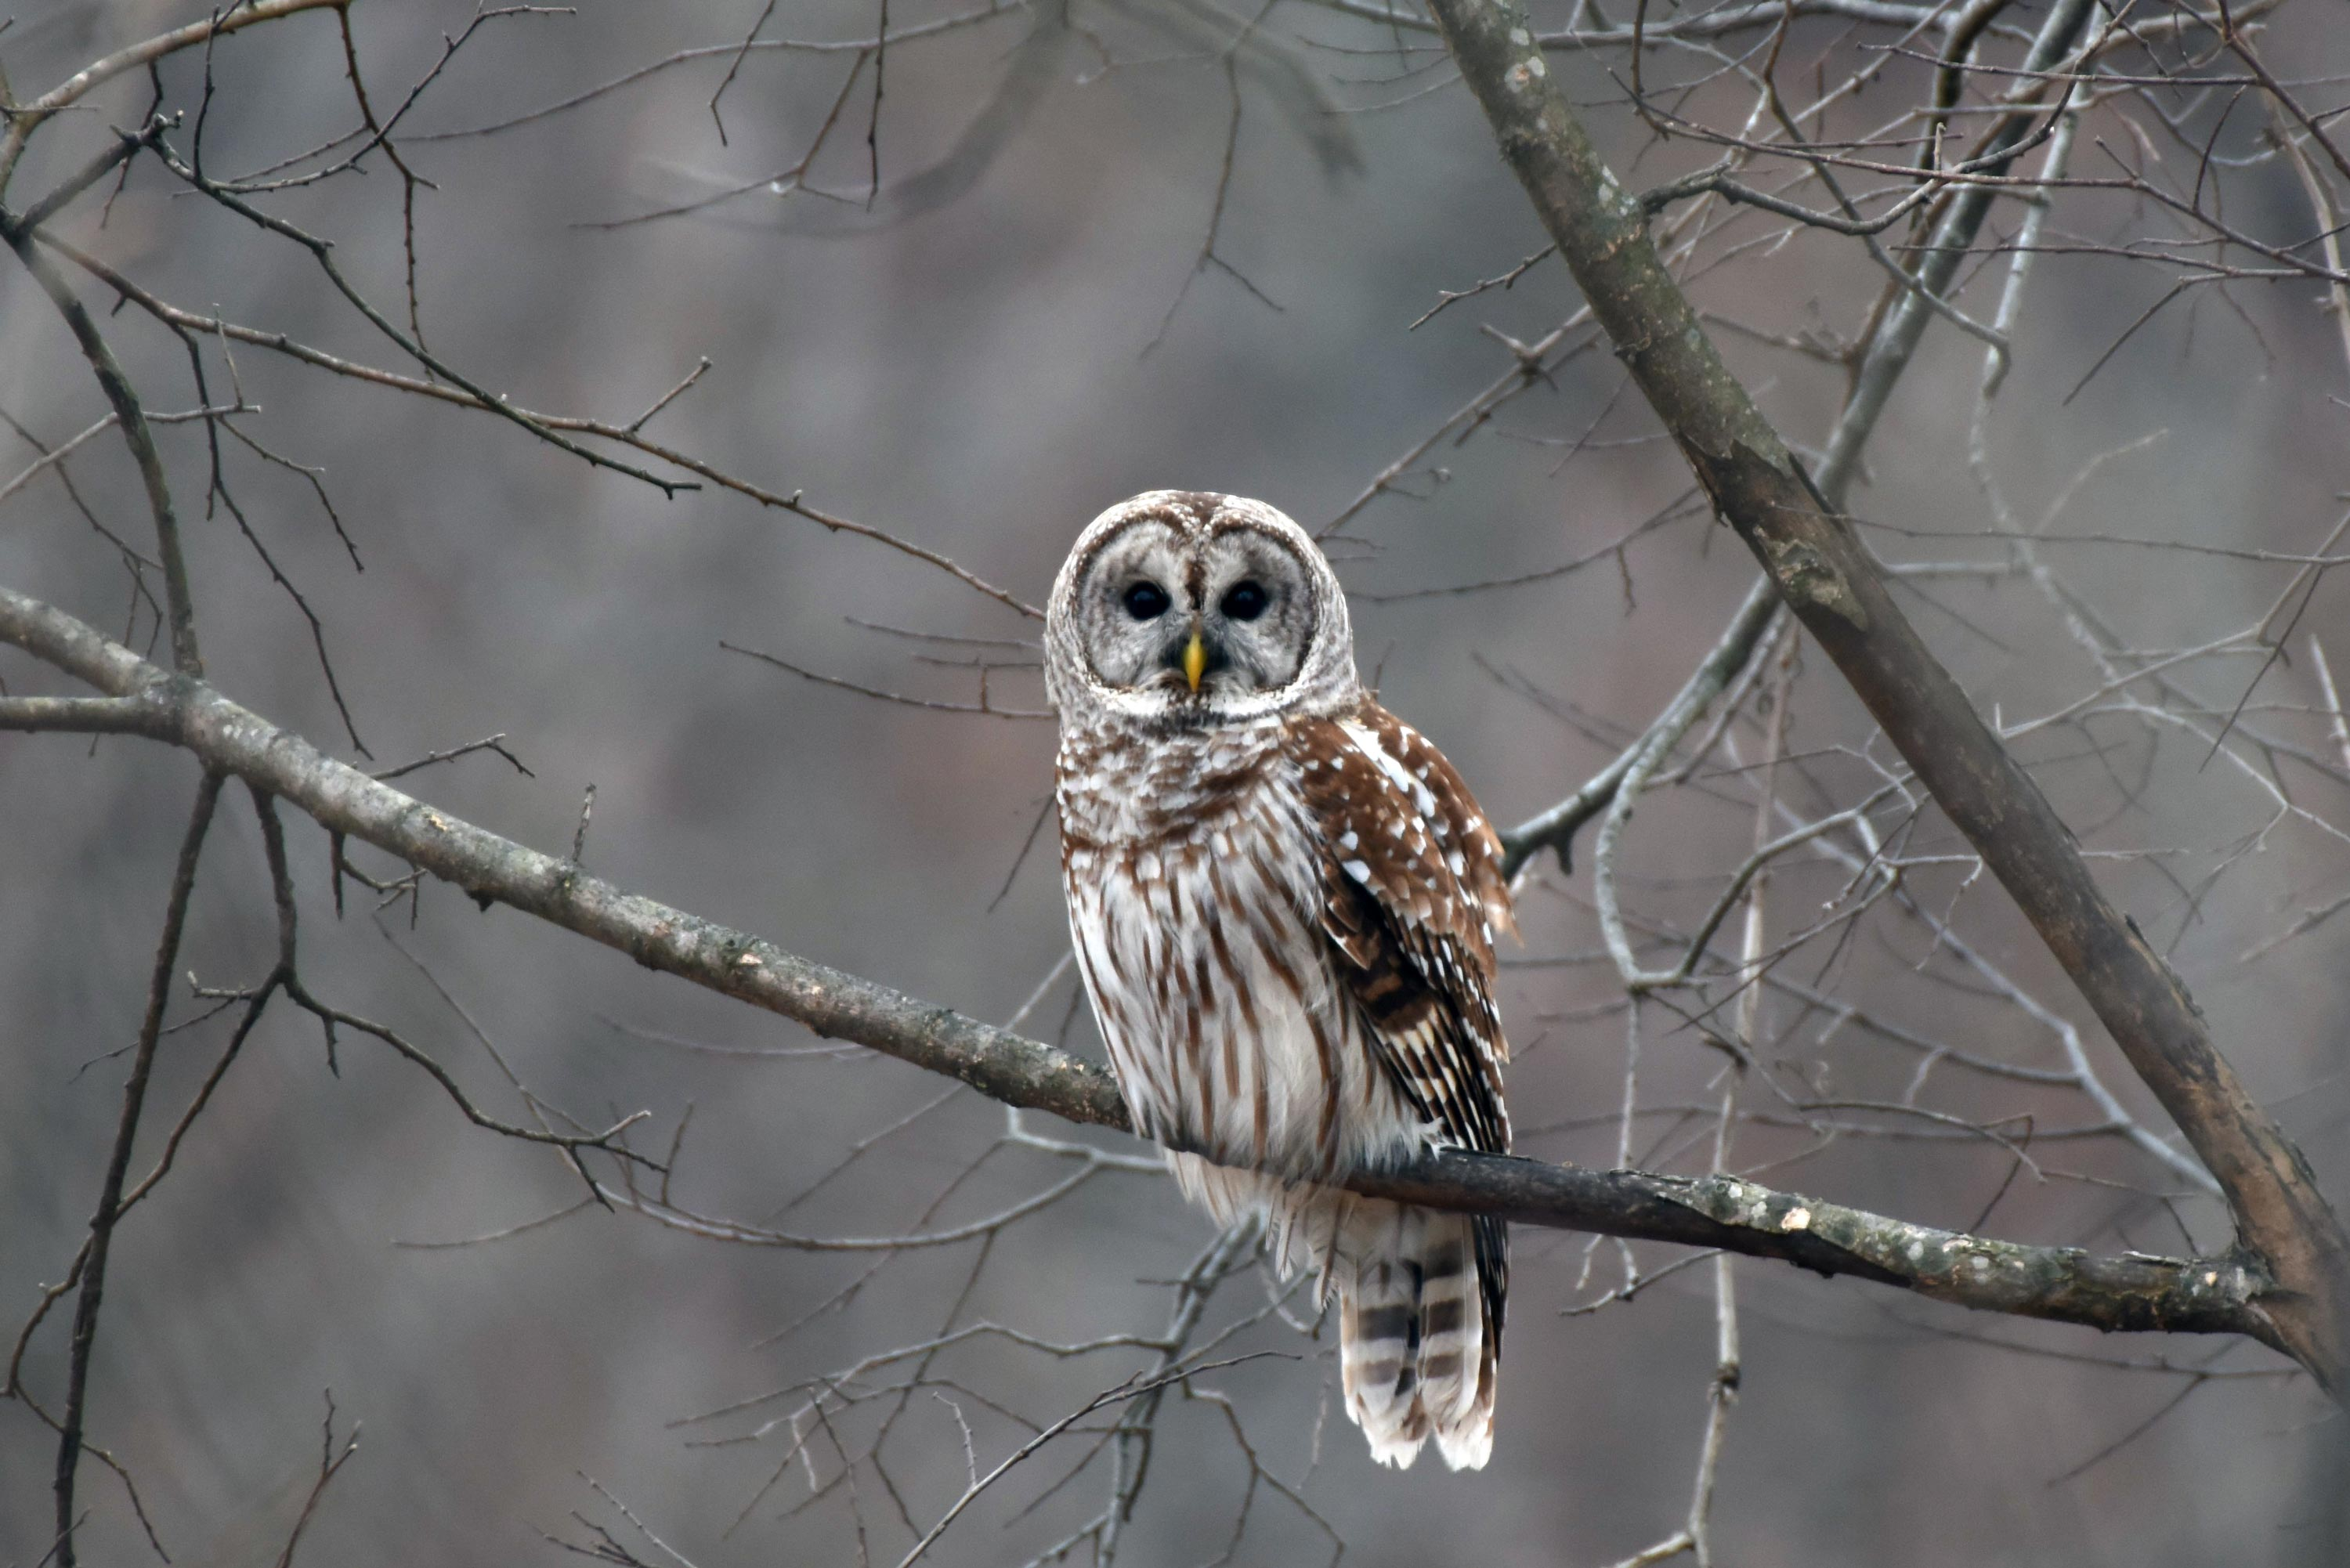 The Owls of Will County - Forest Preserve District of Will